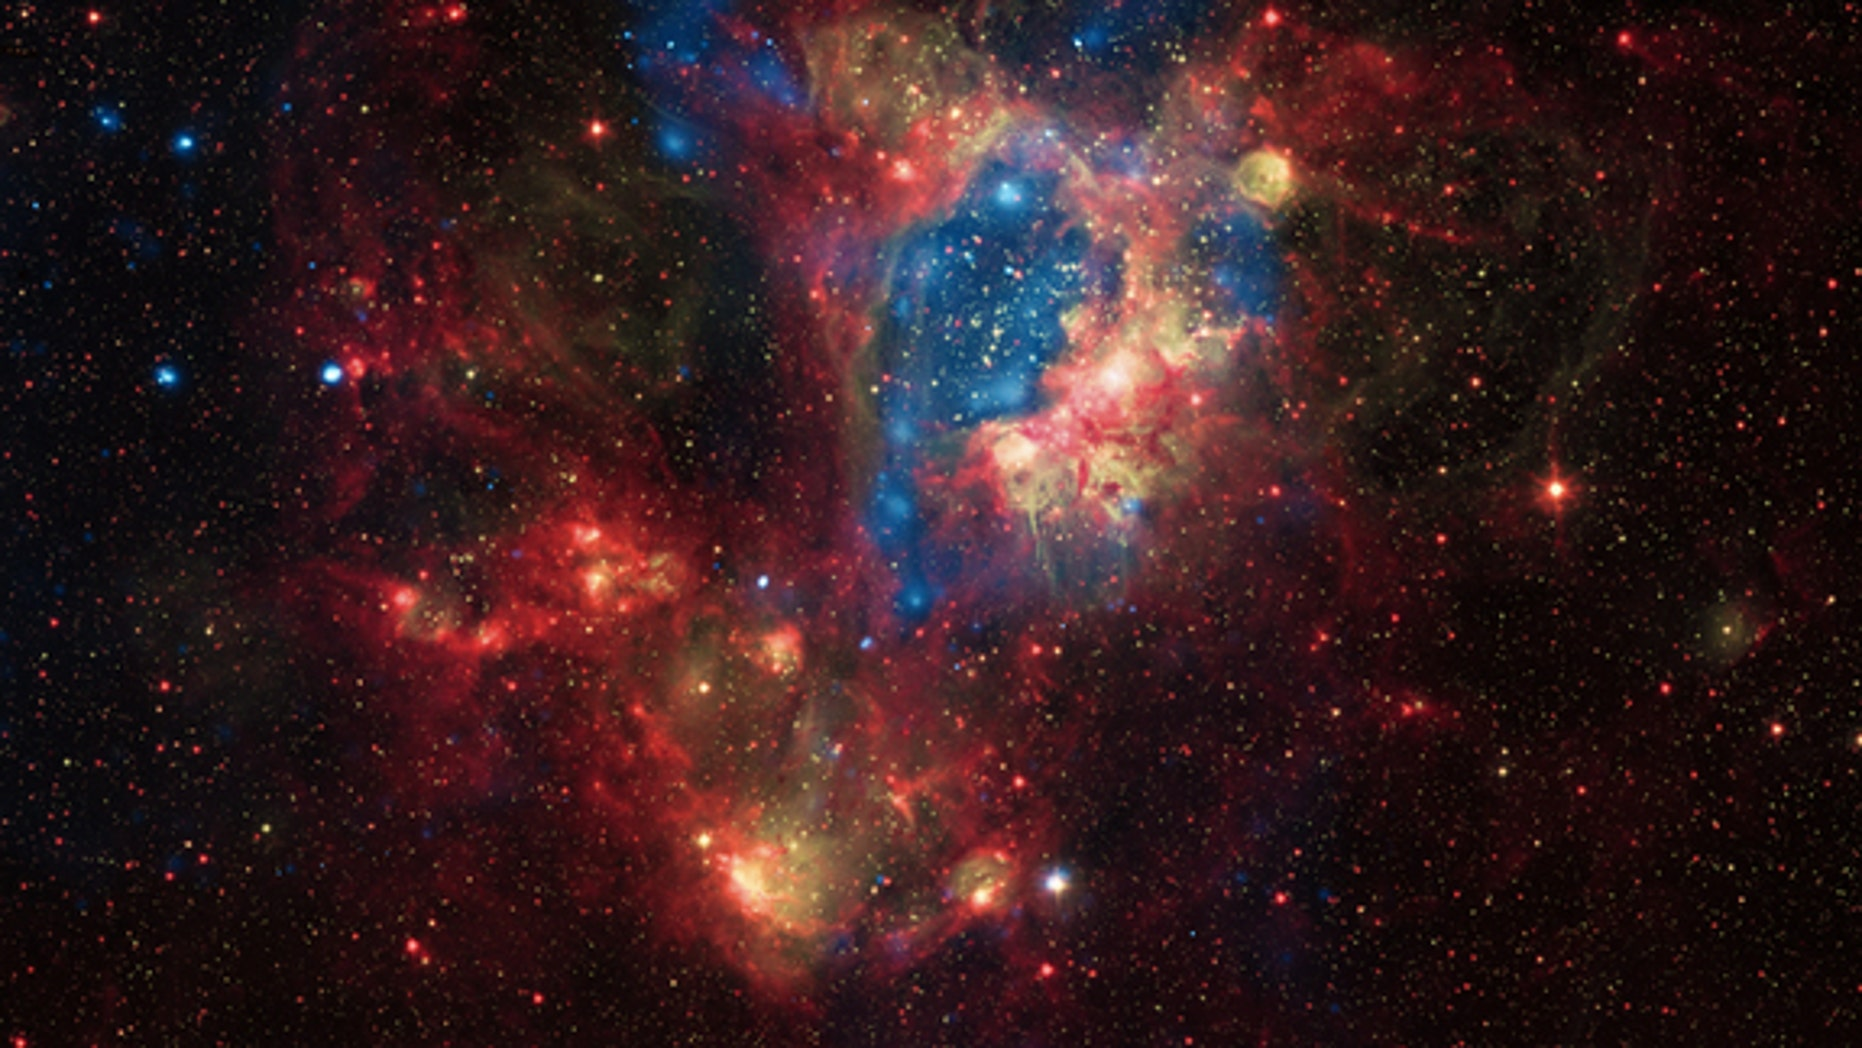 This superbubble in the N44 nebula inside the Large Magellanic Cloud was carved out by exploding stars. The photo, released in August 2012, comes from the Chandra X-ray Space Telescope, combined with data collected by observatories covering oth